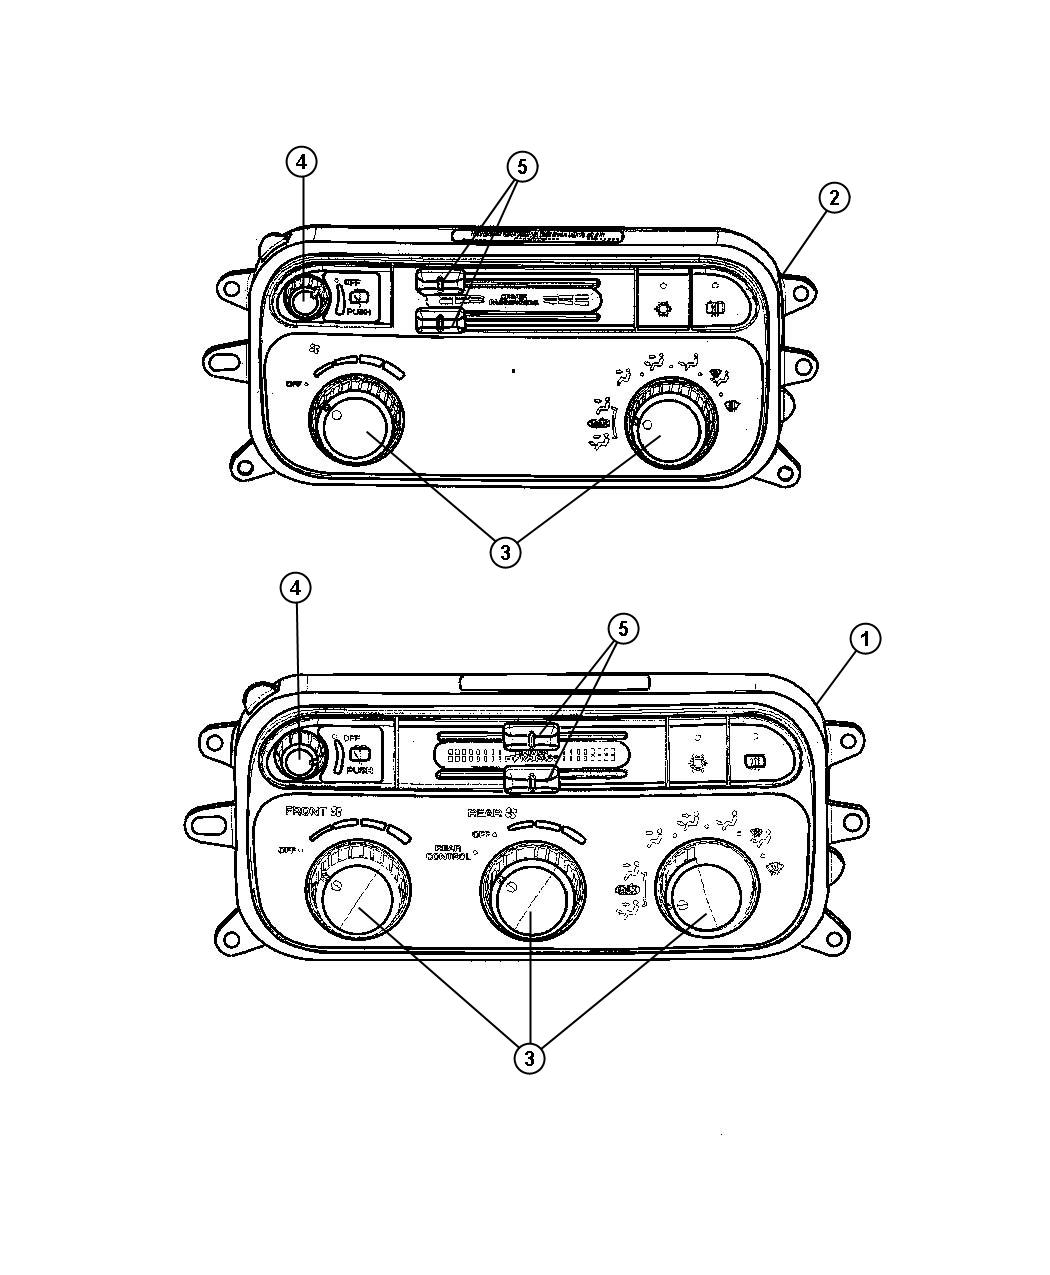 Dodge Durango Heater Diagram